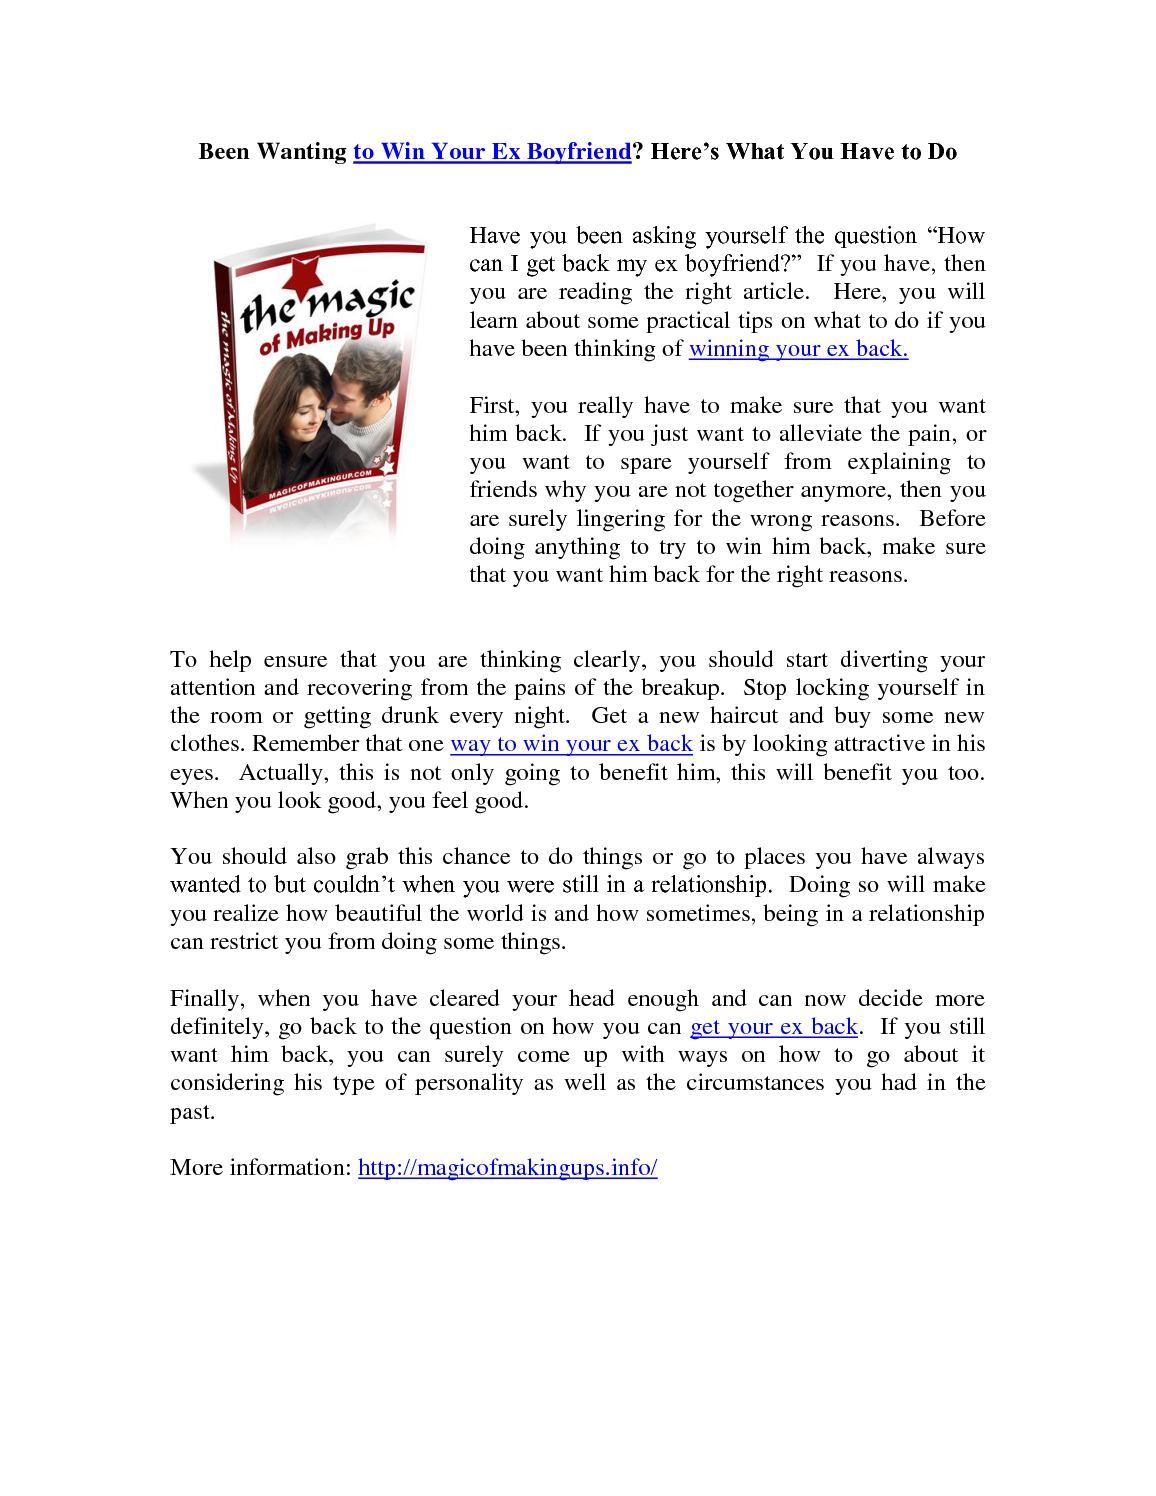 How To Get Your Ex Boyfriend Back Win Him Back Forever – Home Garden